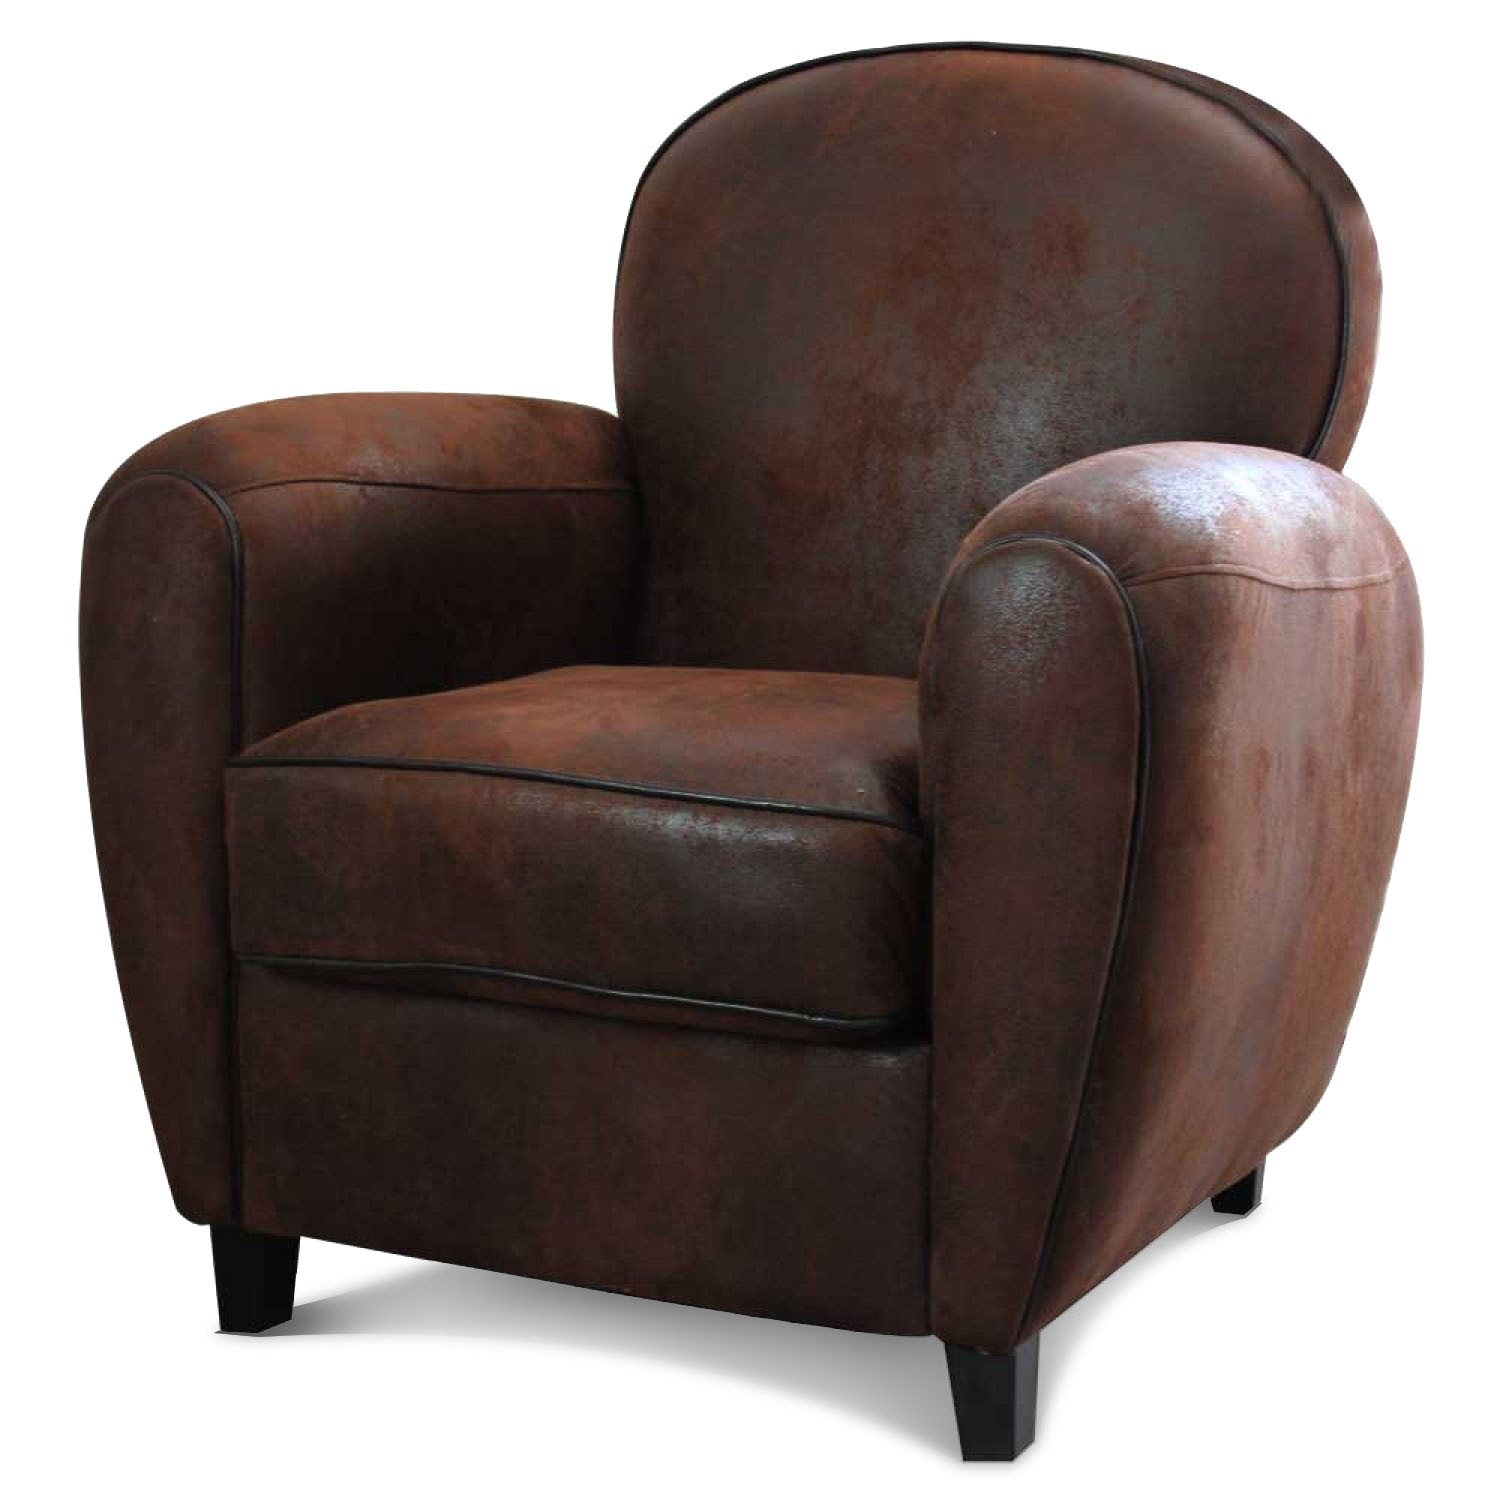 fauteuil club en microfibre effet cro te de cuir demeure. Black Bedroom Furniture Sets. Home Design Ideas